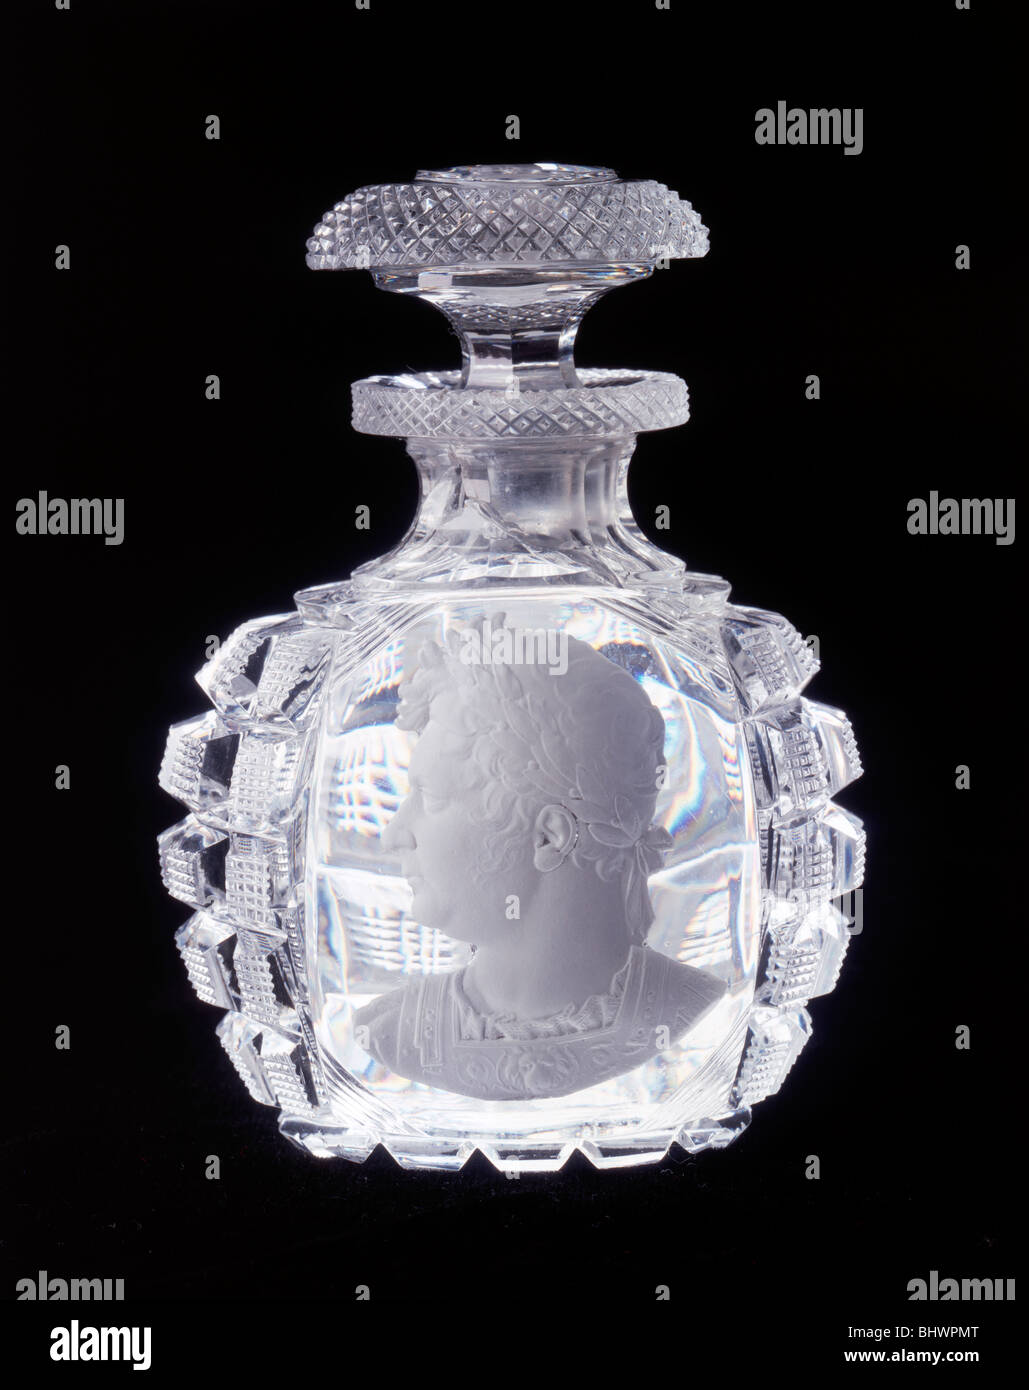 Diamond-cut scent bottle with sulphide representing the Prince Regent, c1800. - Stock Image